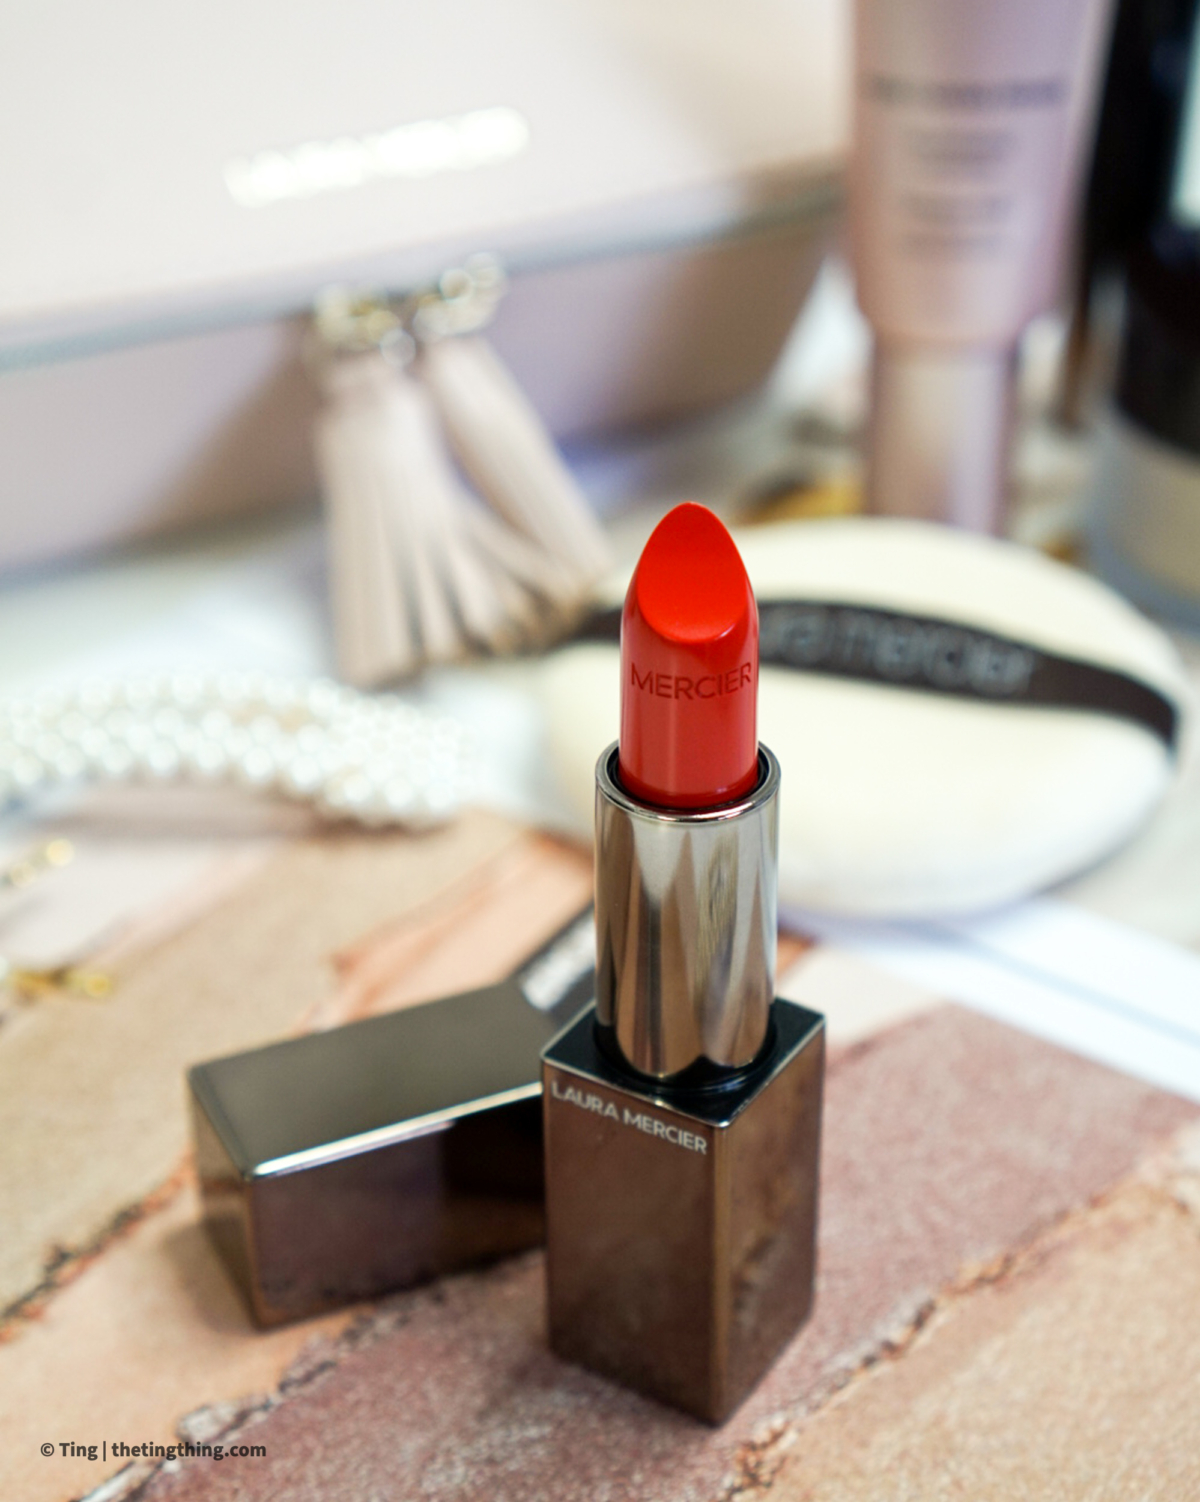 Close up shot of a red lipstick in gunmetal grey packaging.